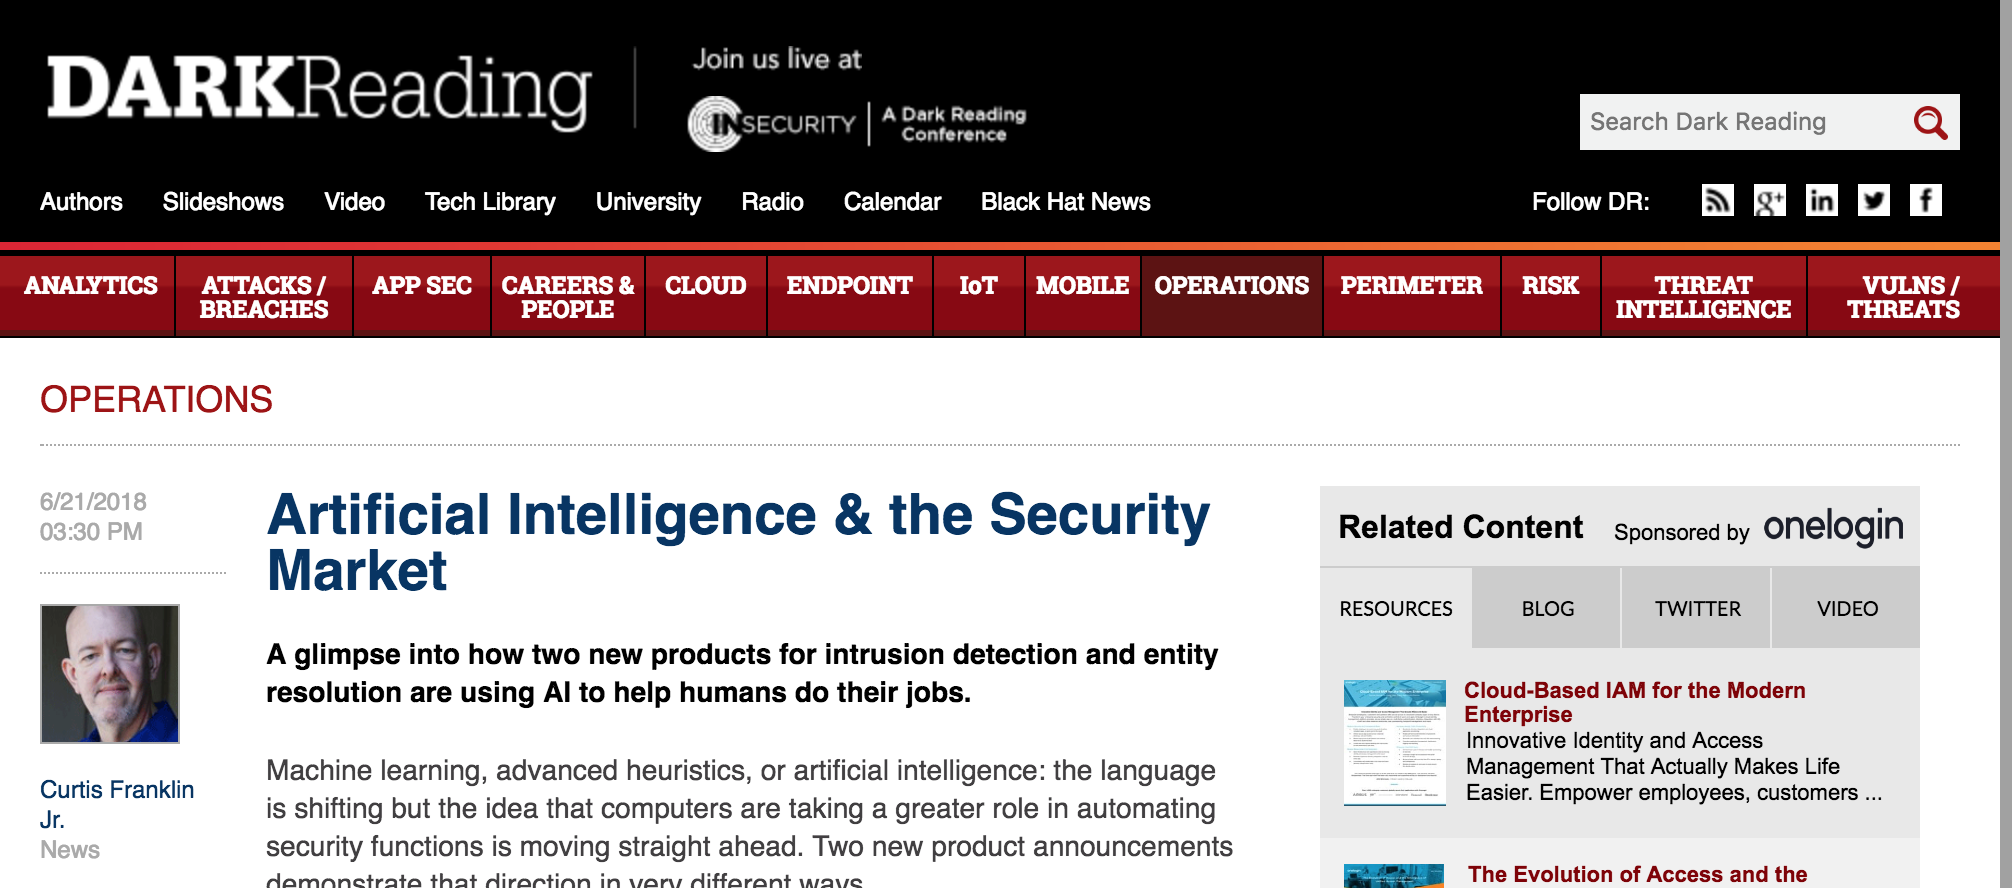 Artificial Intelligence & the Security Market